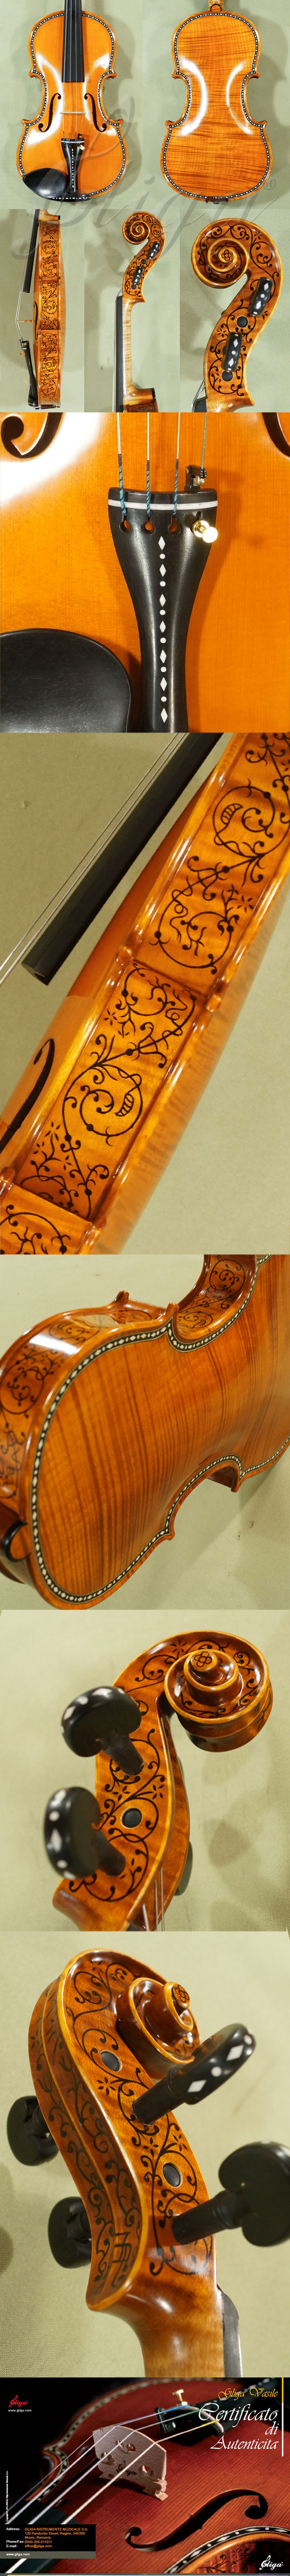 4/4 MAESTRO VASILE GLIGA Rare White Bone and Ebony Inlaid Purfling One Piece Back Violin